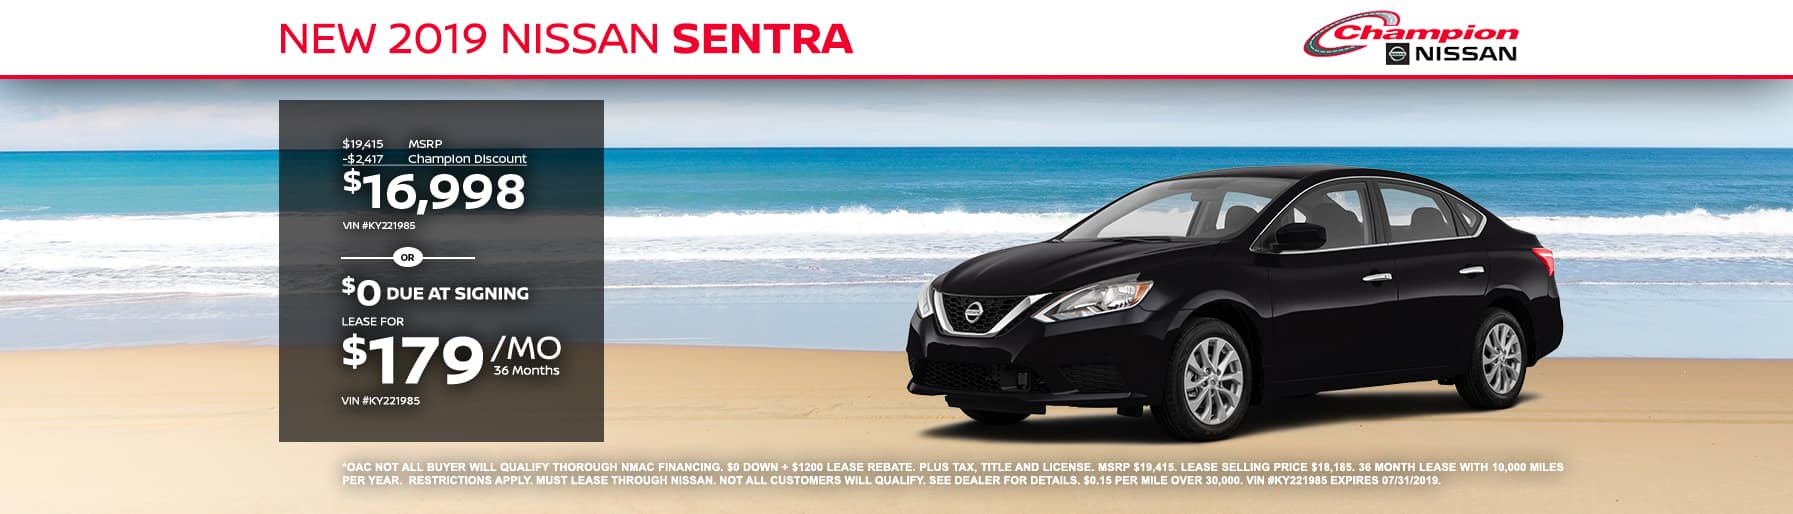 Nissan Dealership Los Angeles >> New And Used Nissan Cars For Sale Champion Nissan Dealership